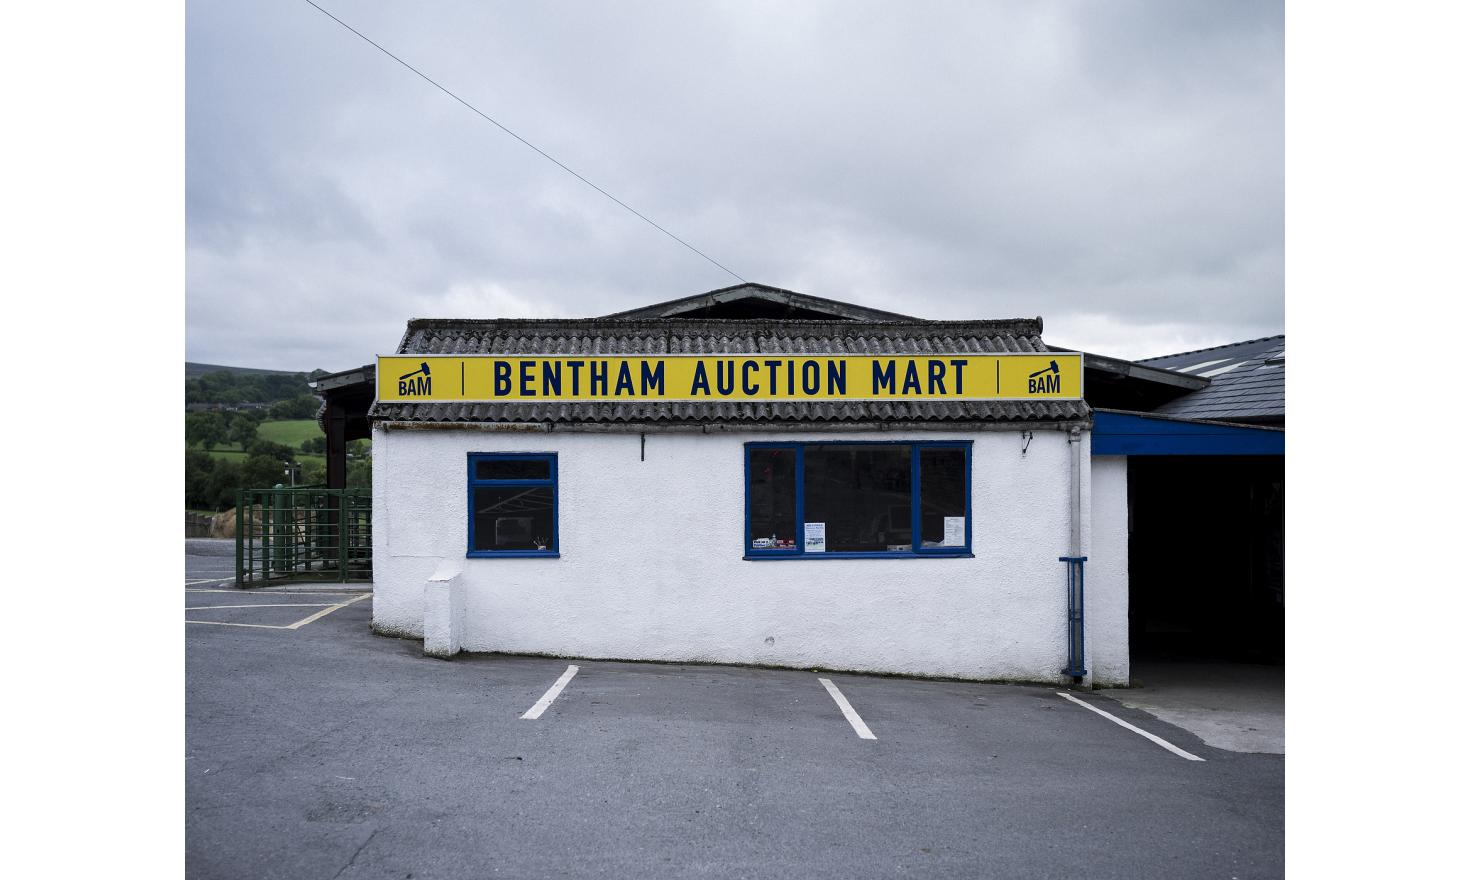 Bentham Auction Mart, in North Yorkshire is where sheep, cattle and pigs are sold at auction, essentially to meat wholesalers.